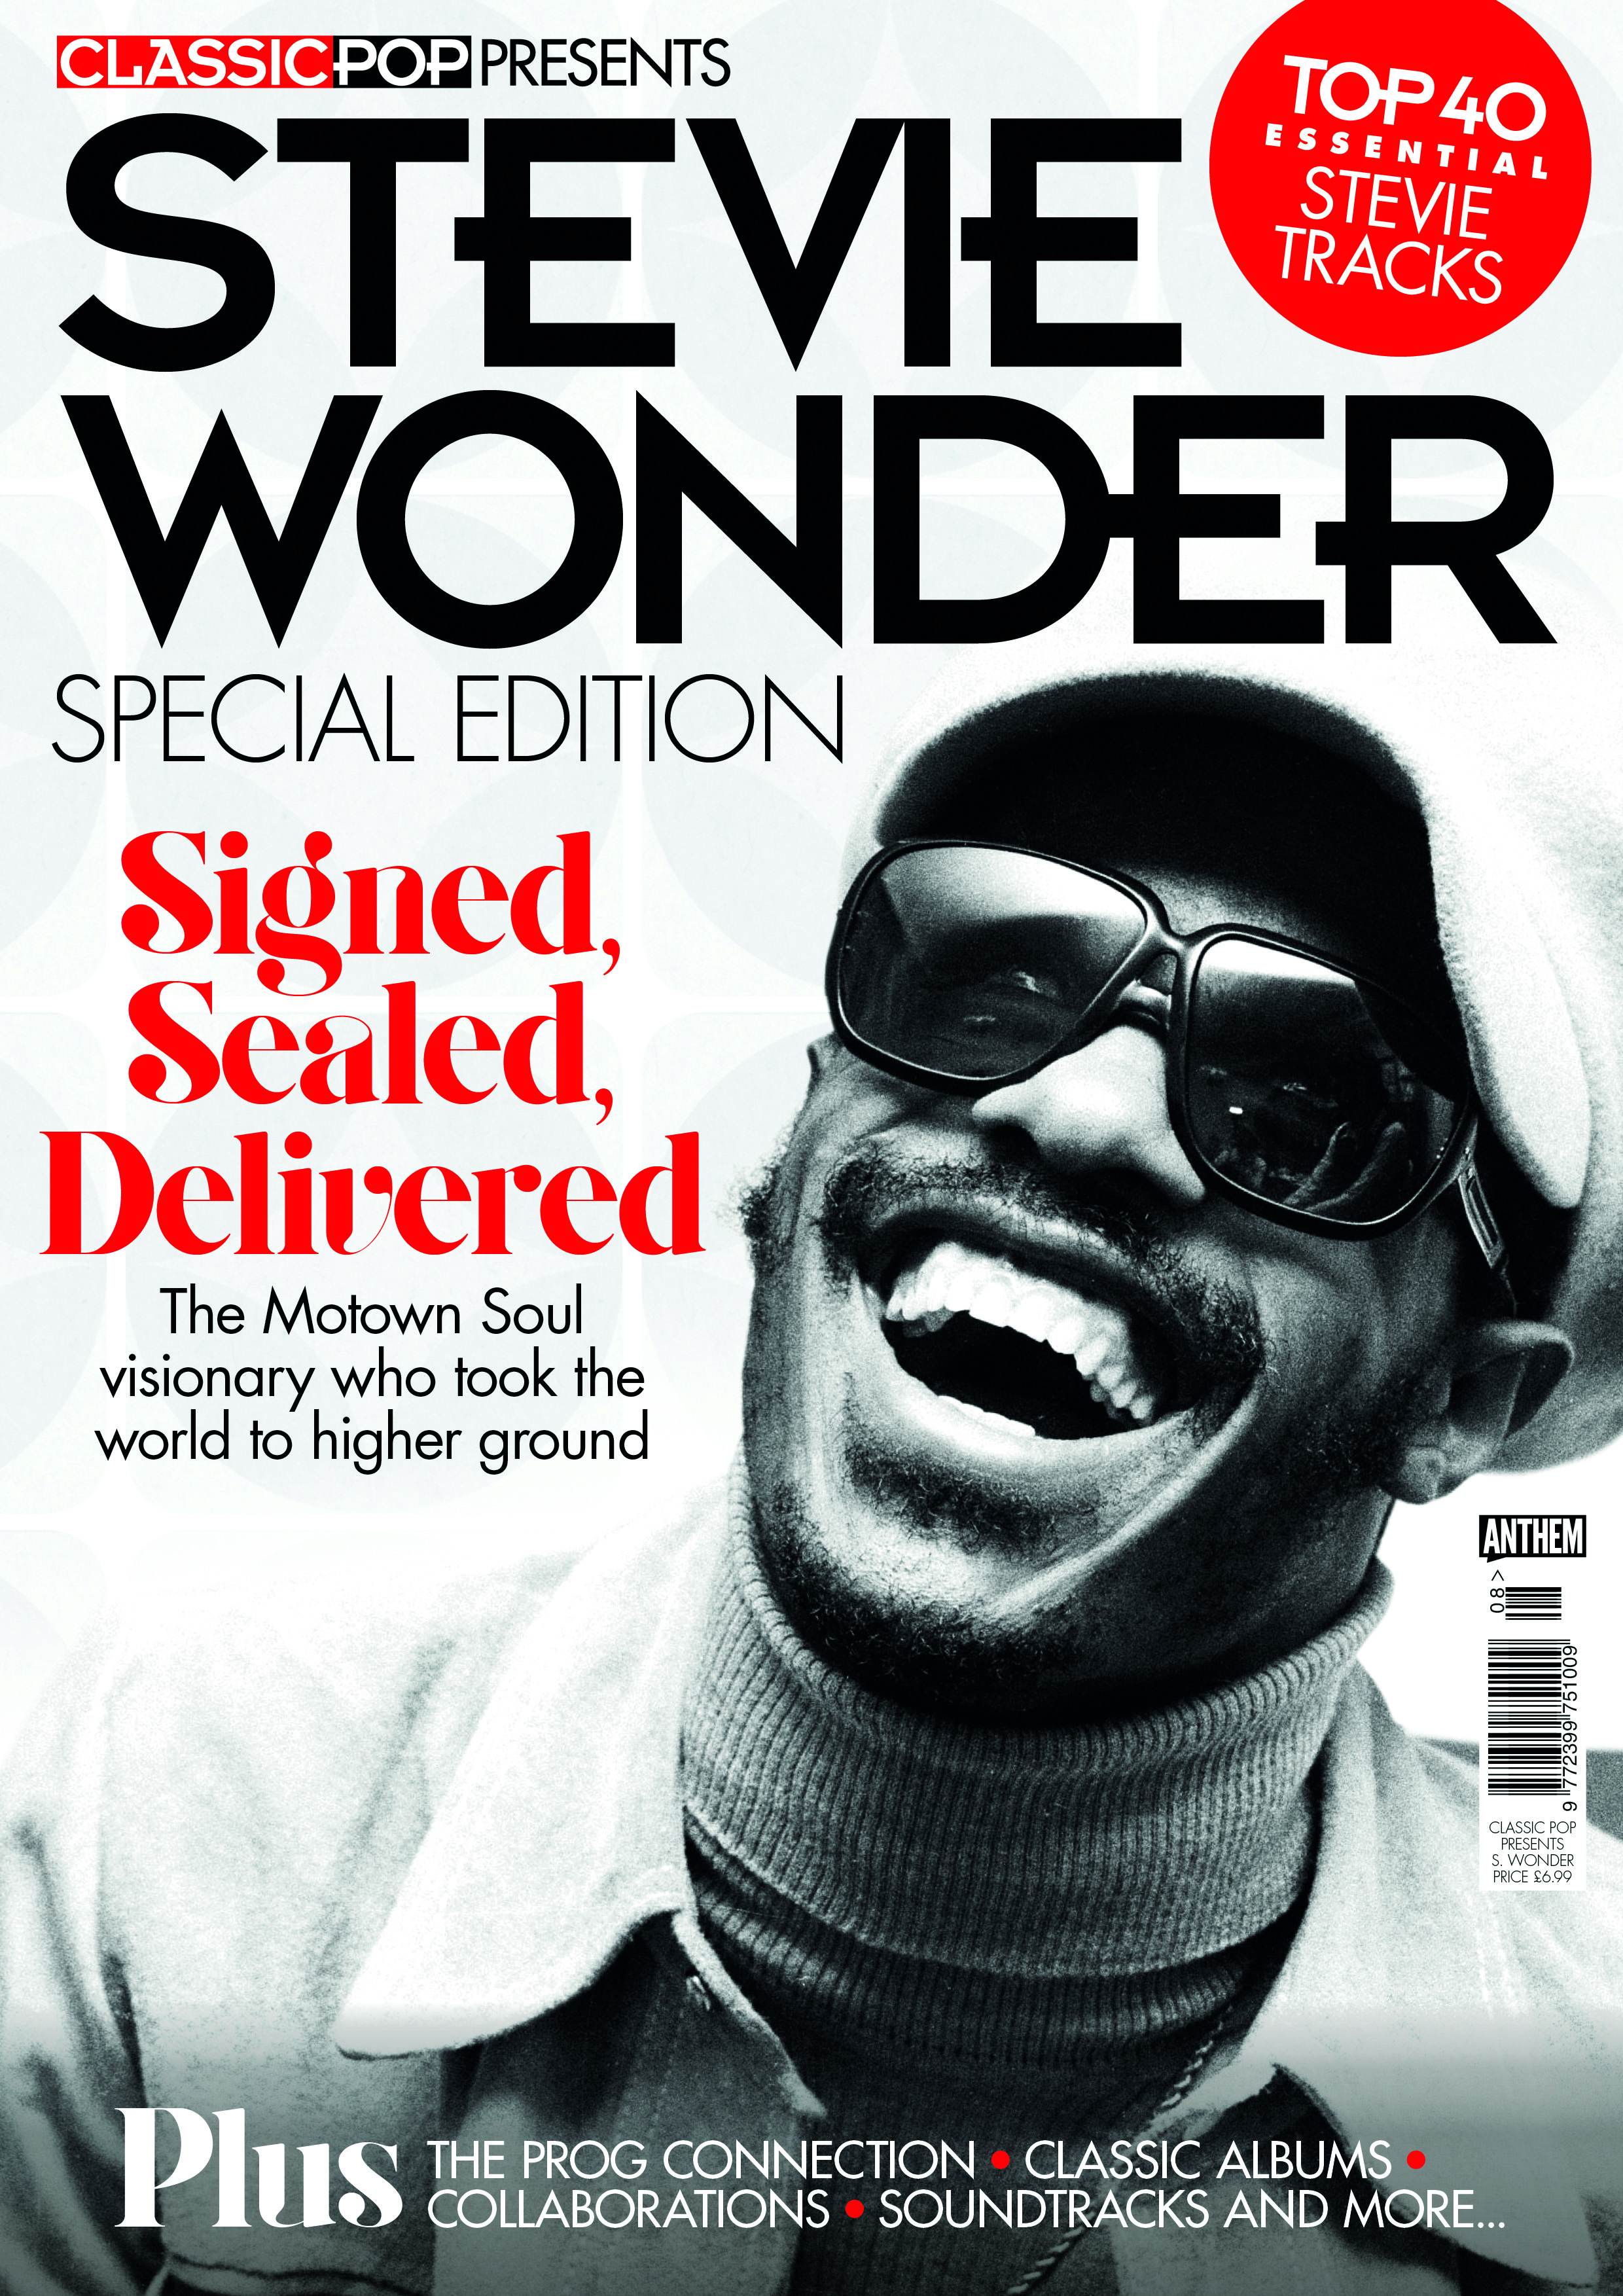 Classic Pop Presents Stevie Wonder Special Edition